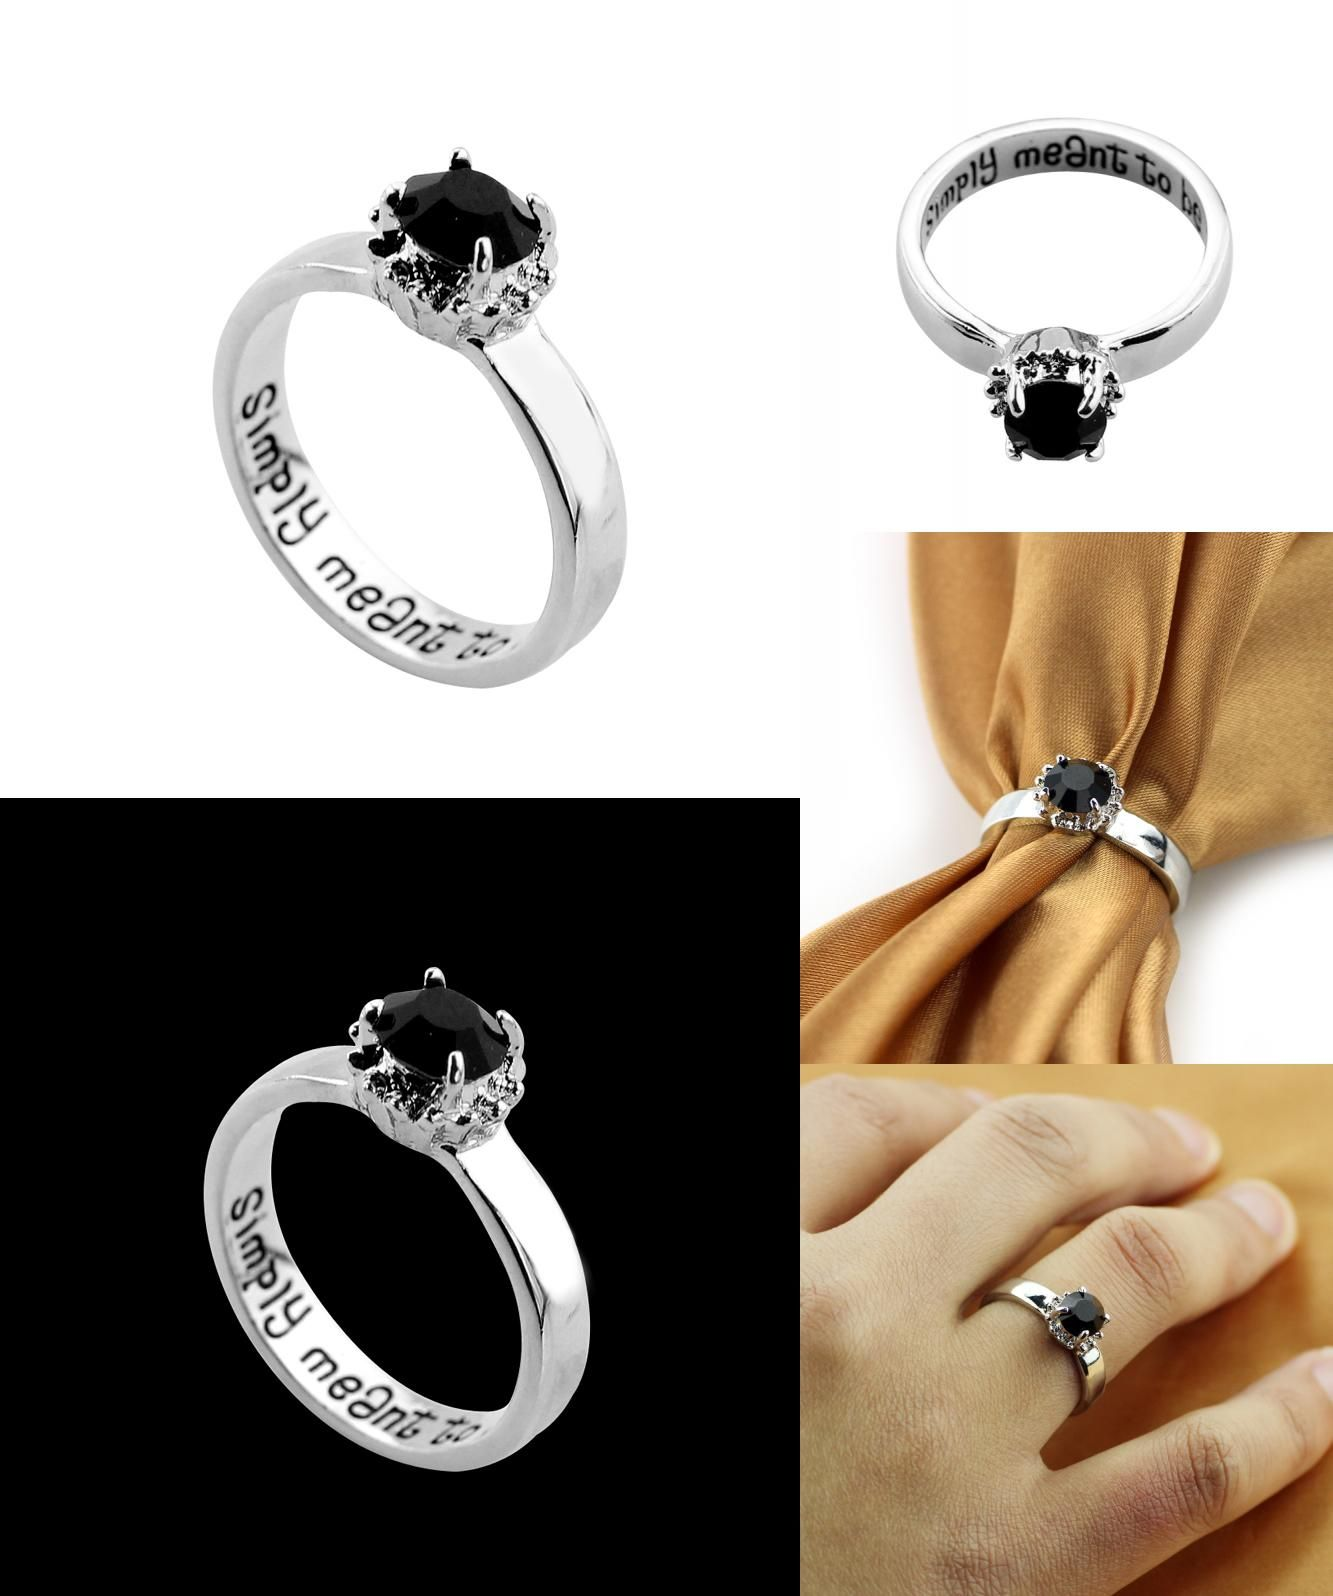 at rings engagement of luxury wholesale found wedding set a ring not nerdy are s bj nerd my